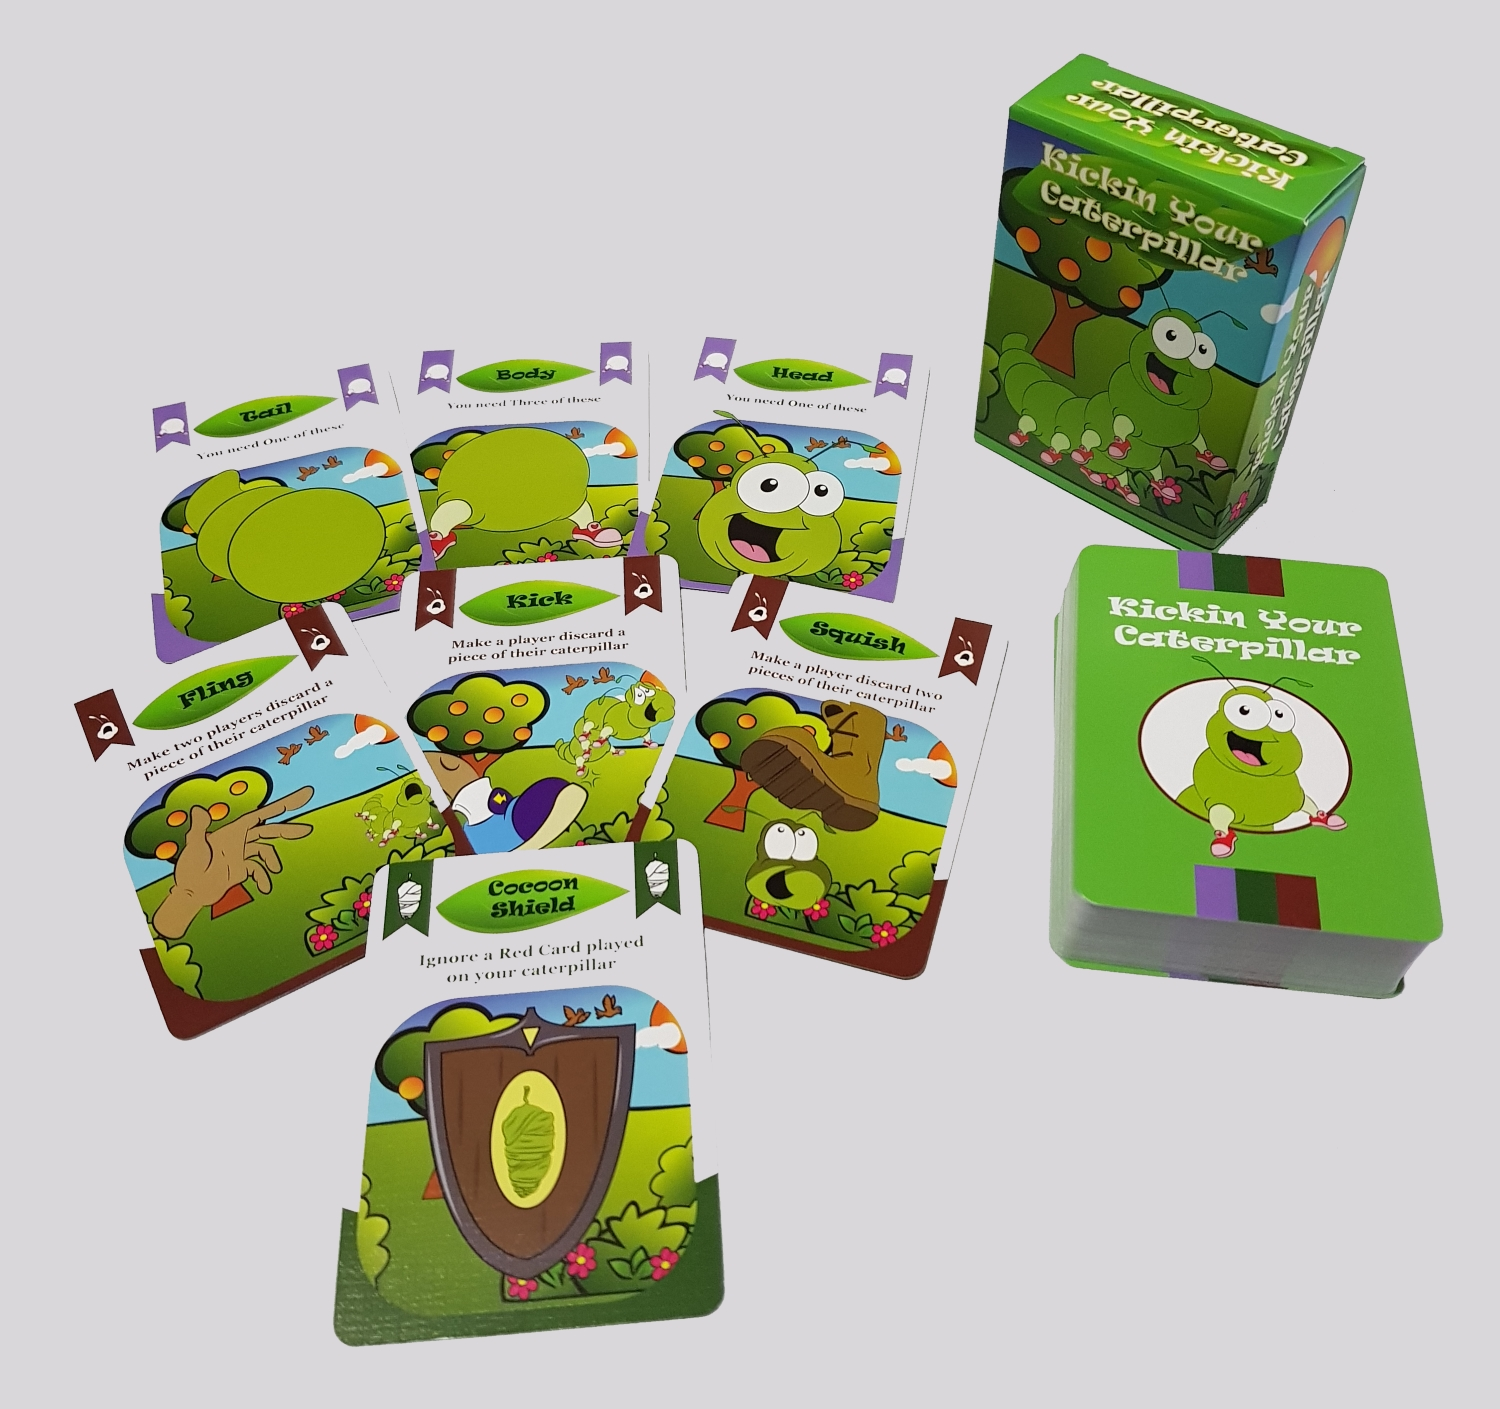 Cards in Kickin Your Caterpillar card game.